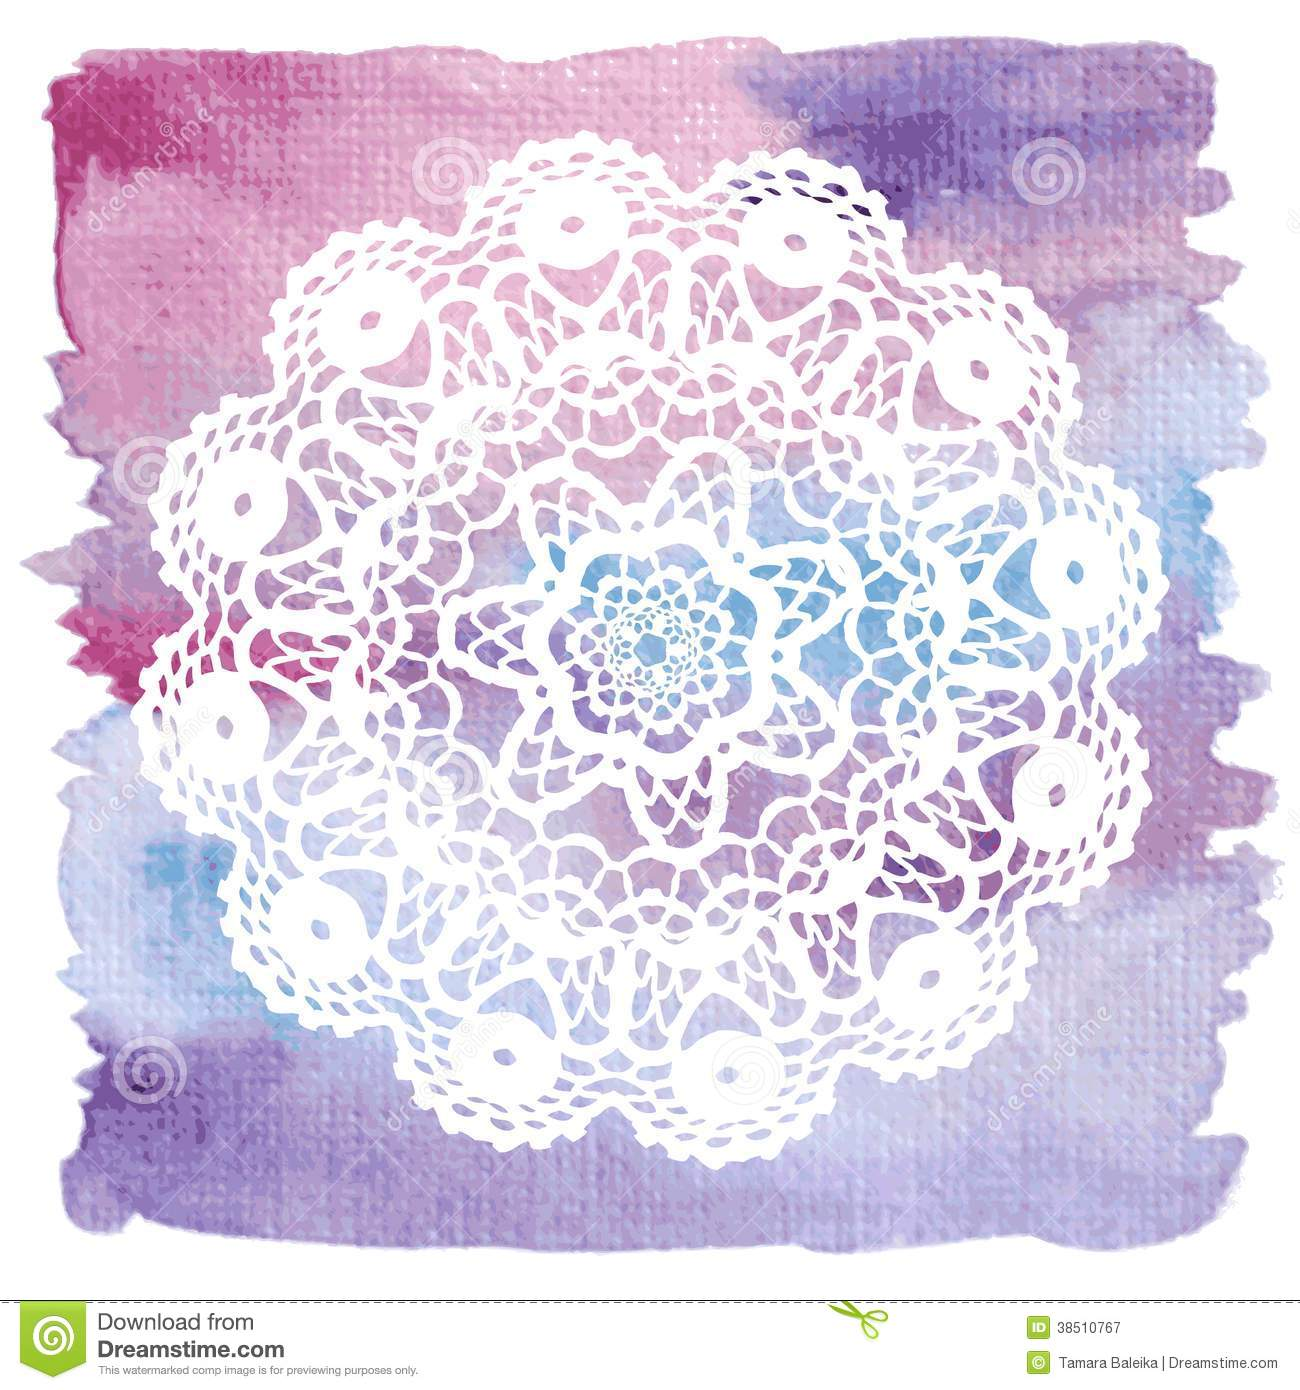 Crochet Wedding Invitations: Elegant Lacy Doily. Crochet Mandala. Royalty Free Stock